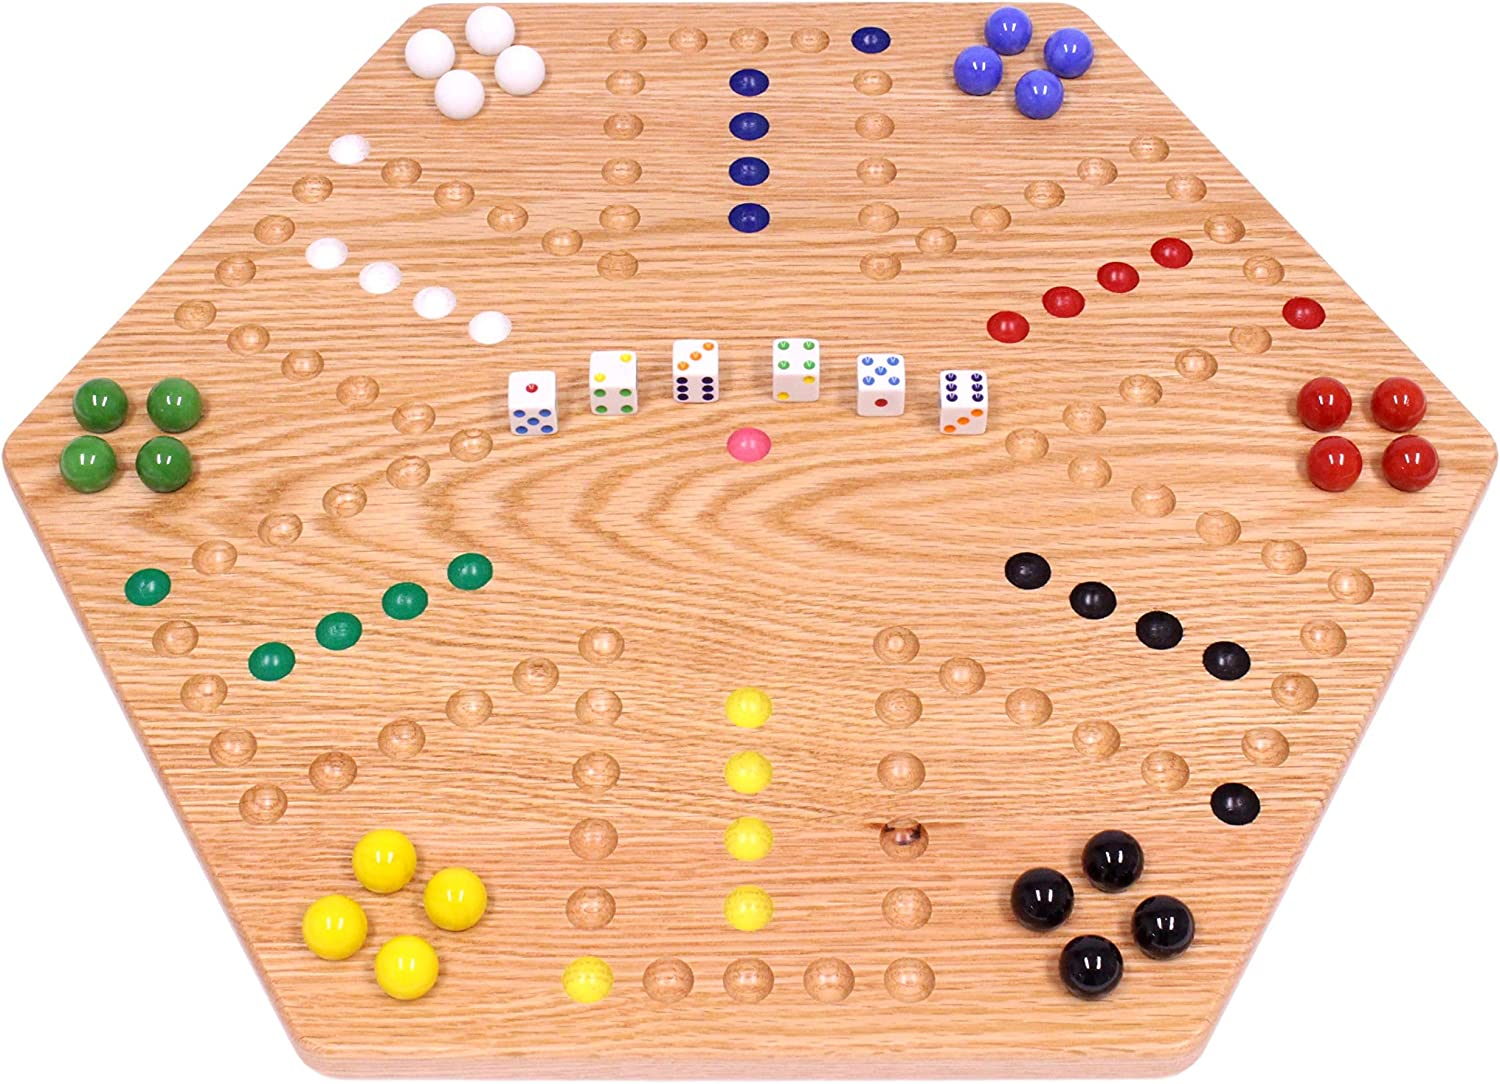 """AmishToyBox.com Oak-Wood Hand-Painted Double-Sided Wooden Aggravation Marble Game Board, 20"""" Wide"""